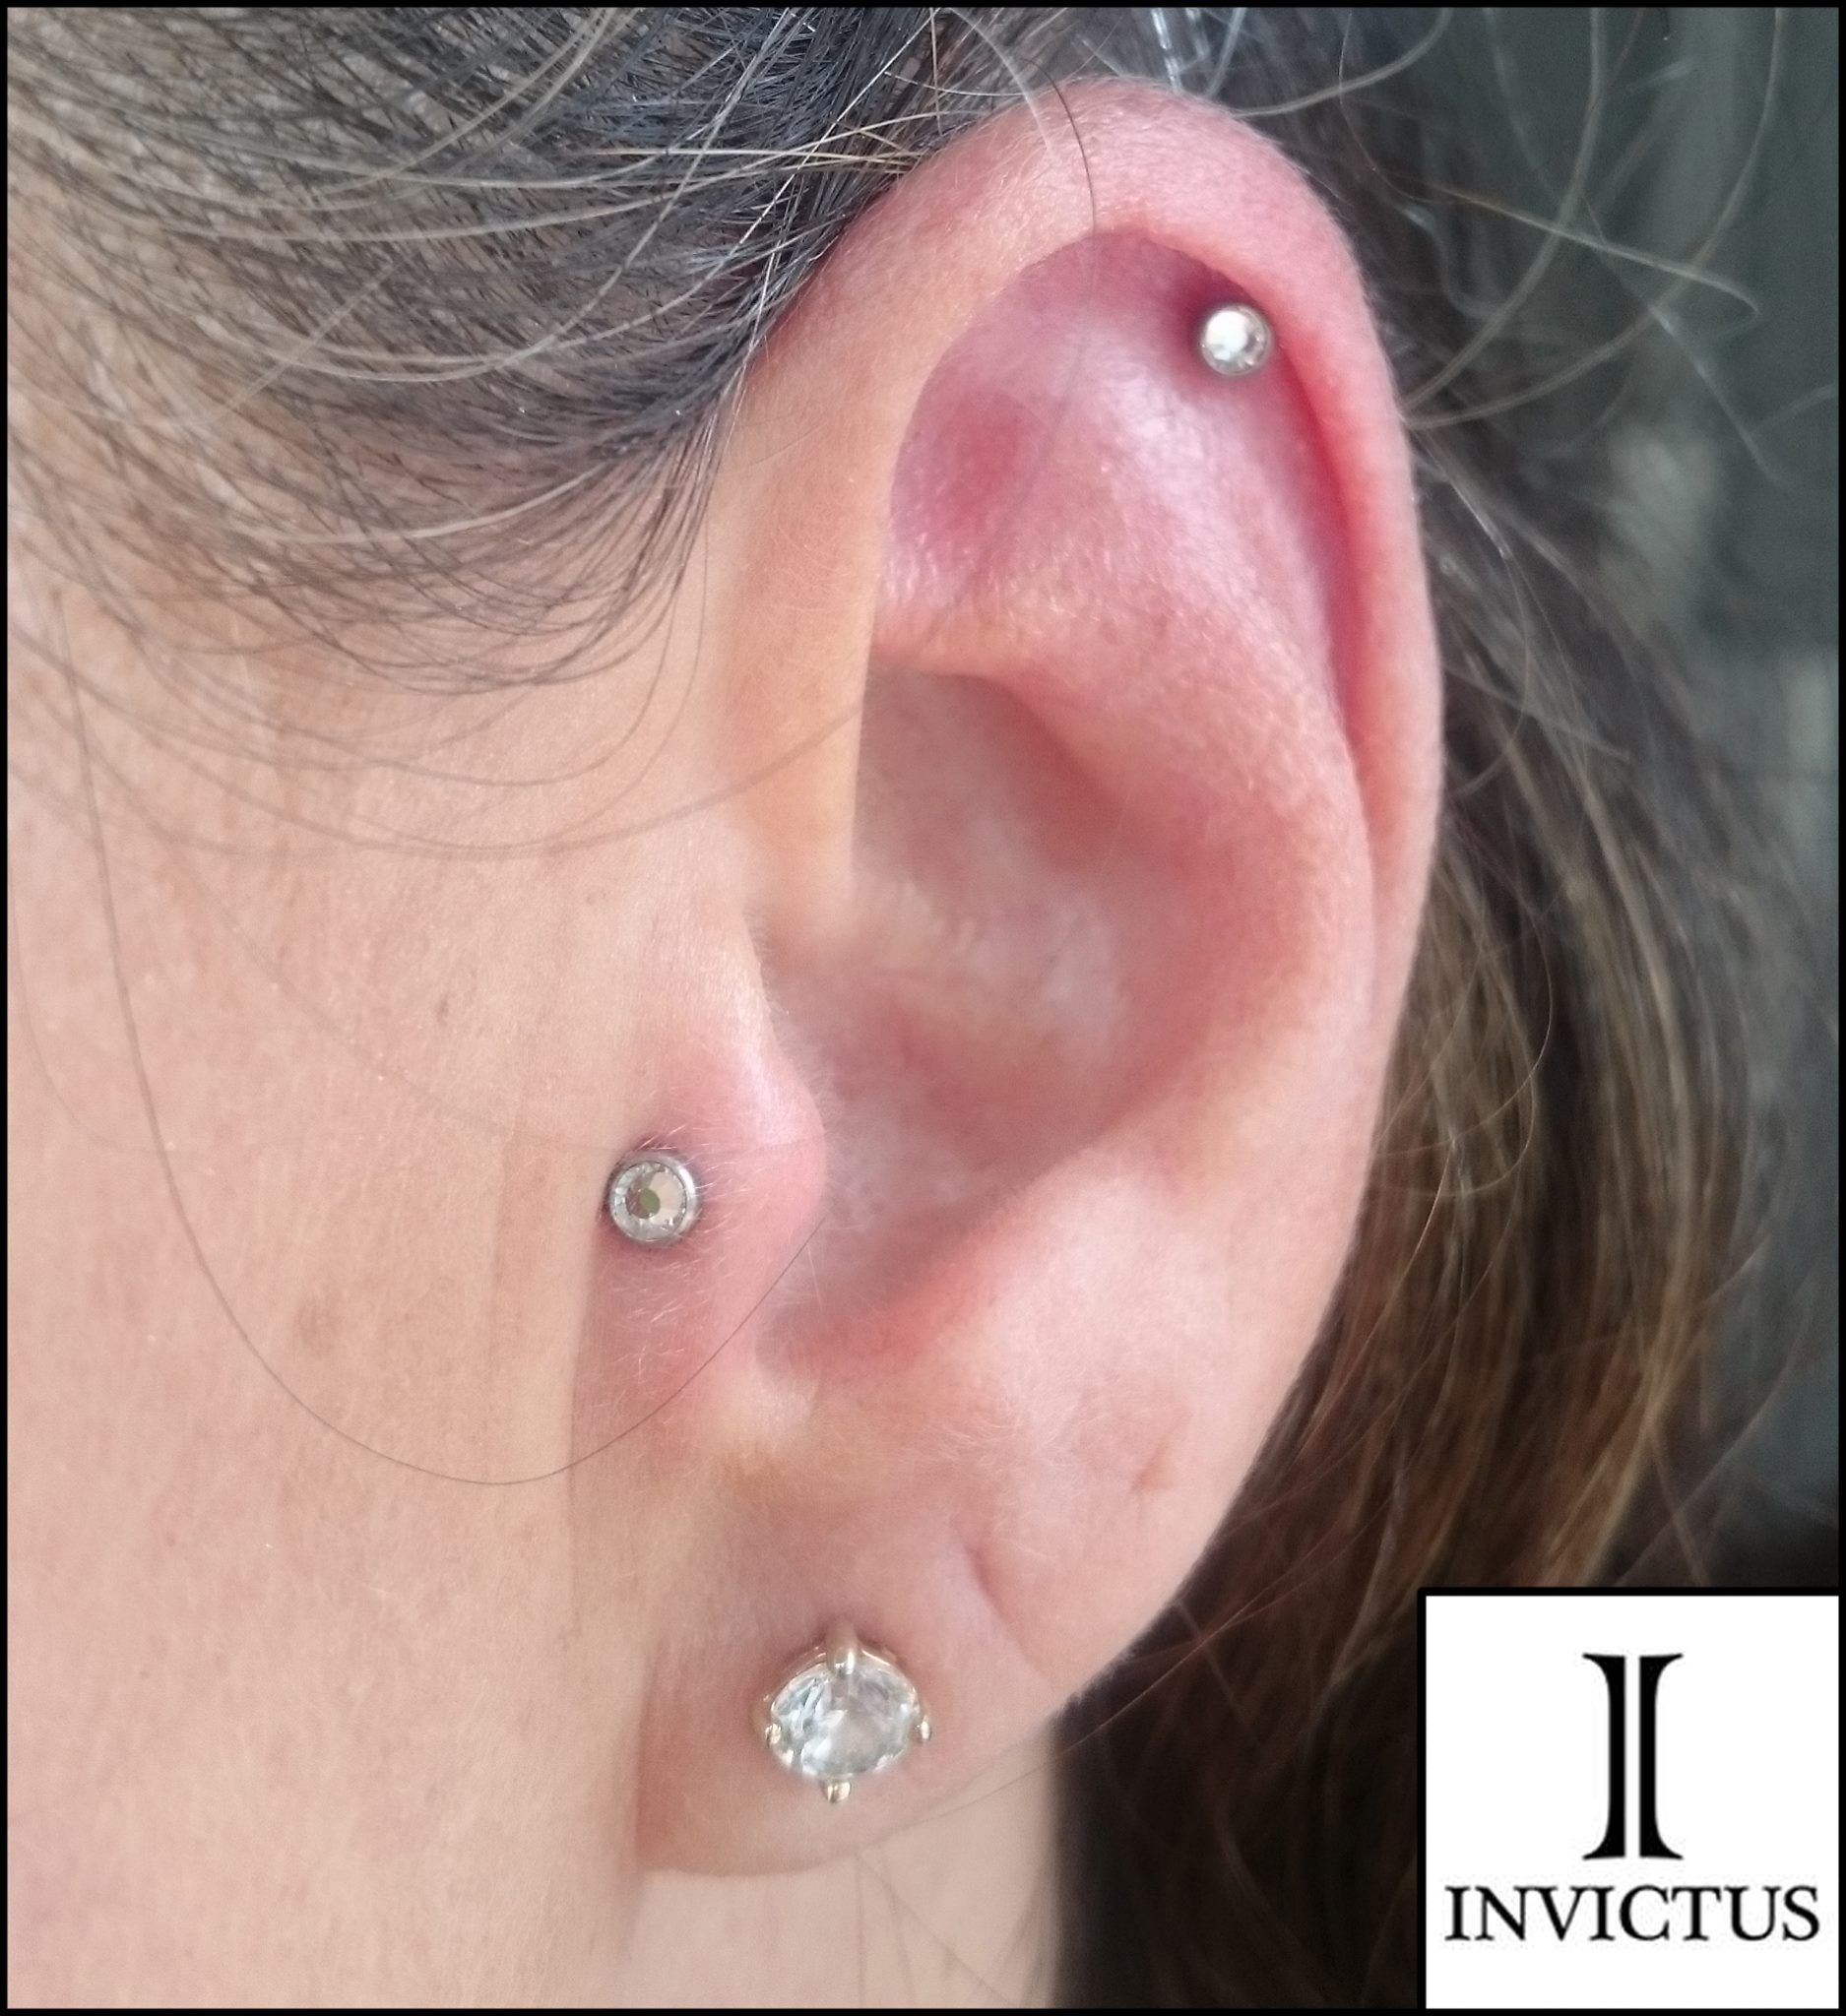 A fresh Tragus Piercing done with an Invictus Body Jewelry Implant